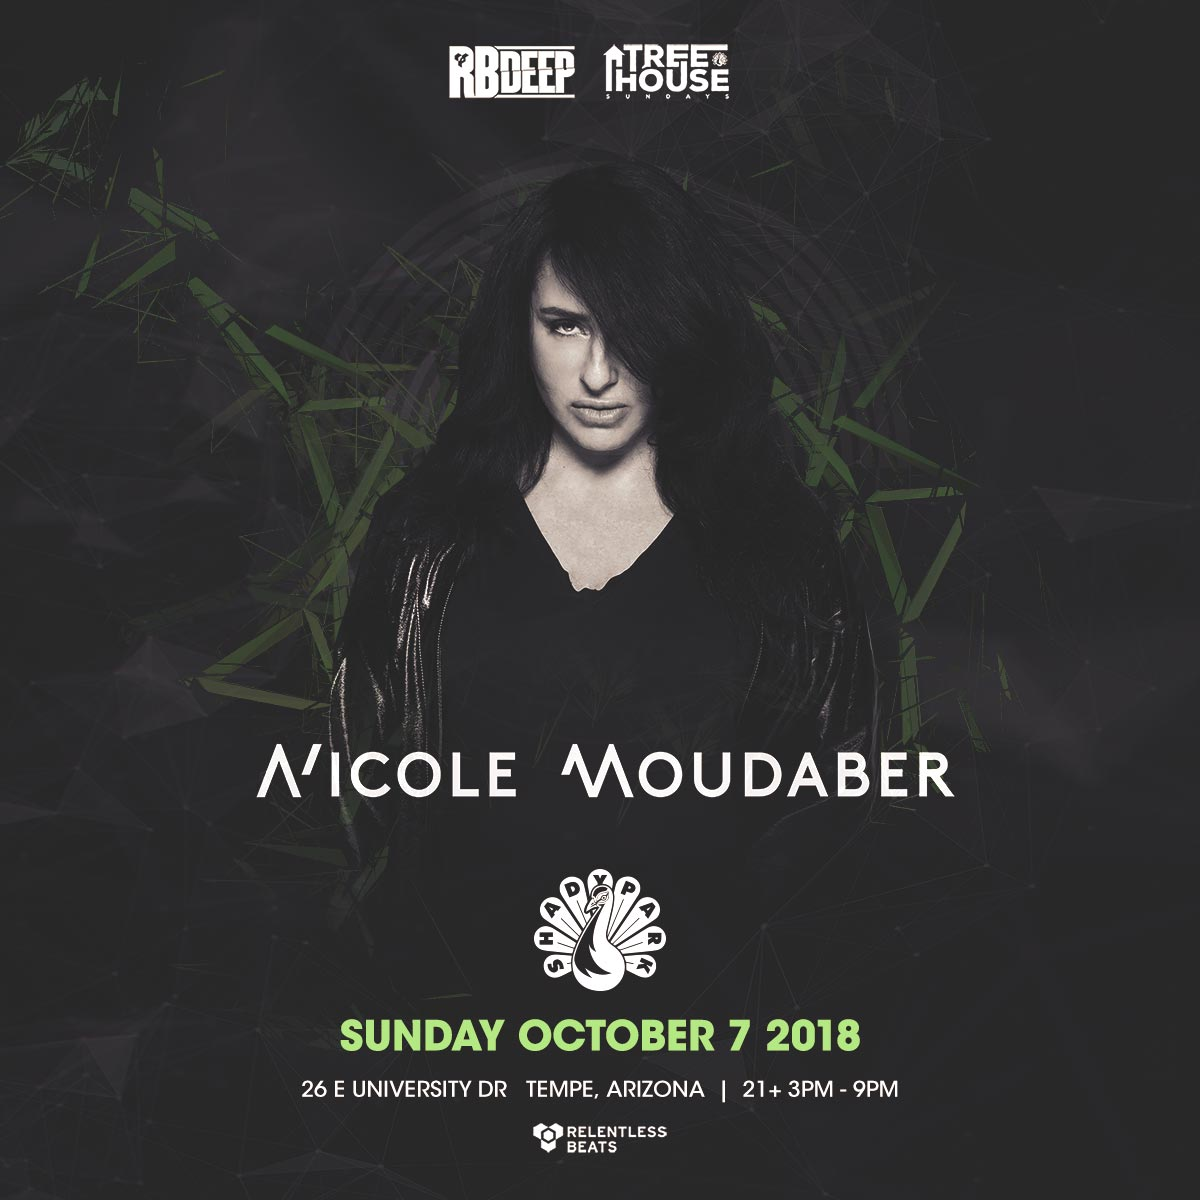 Flyer for Nicole Moudaber